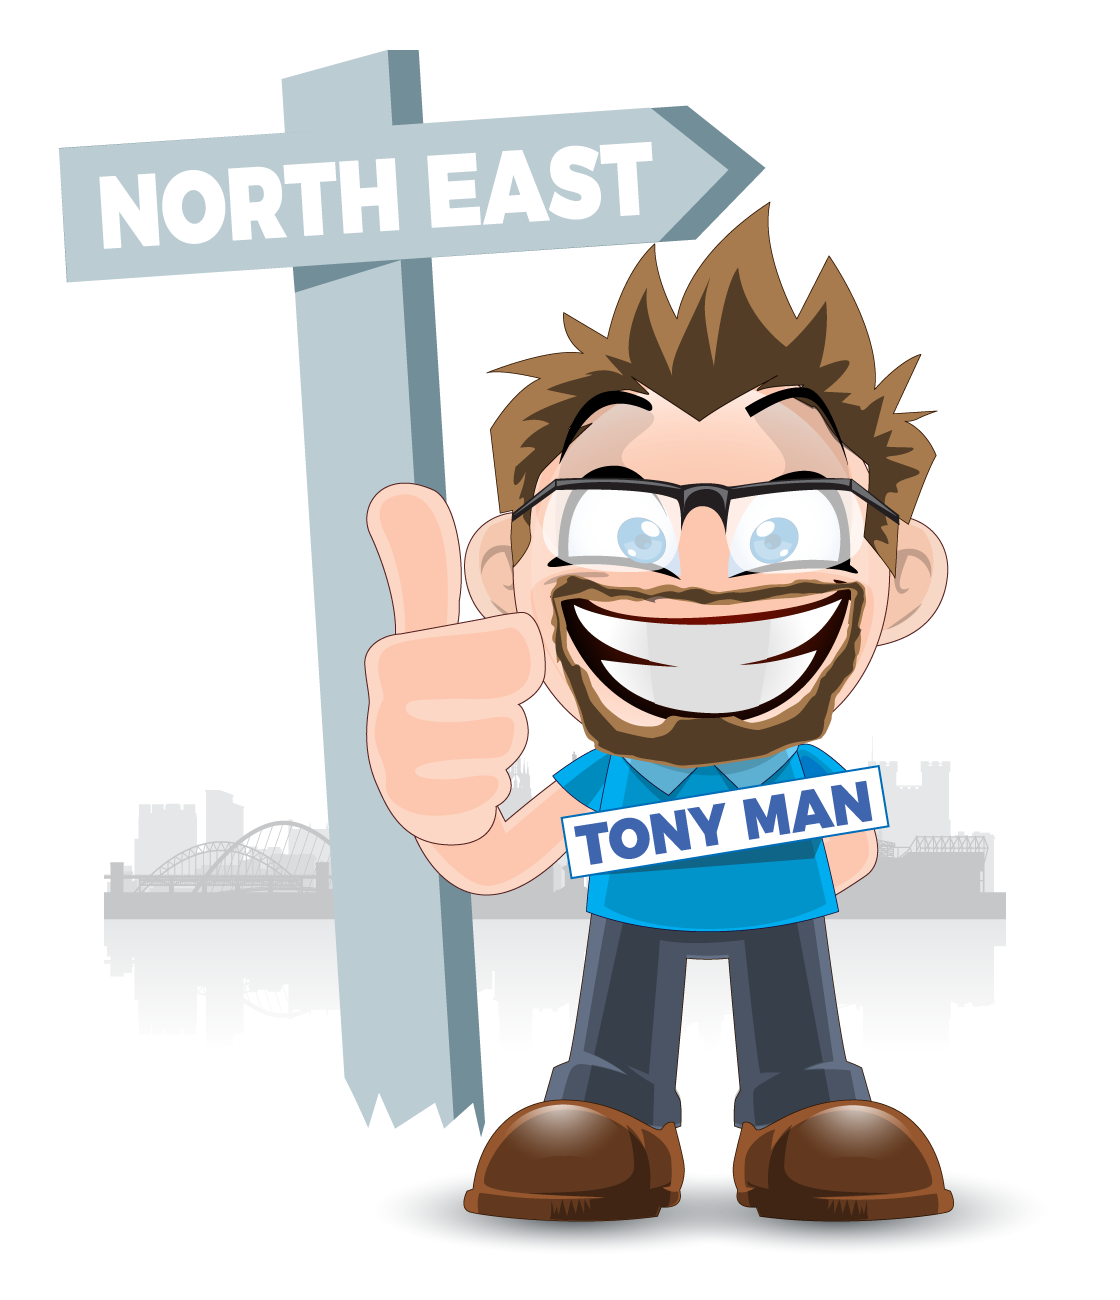 Tony Man Pointing North East